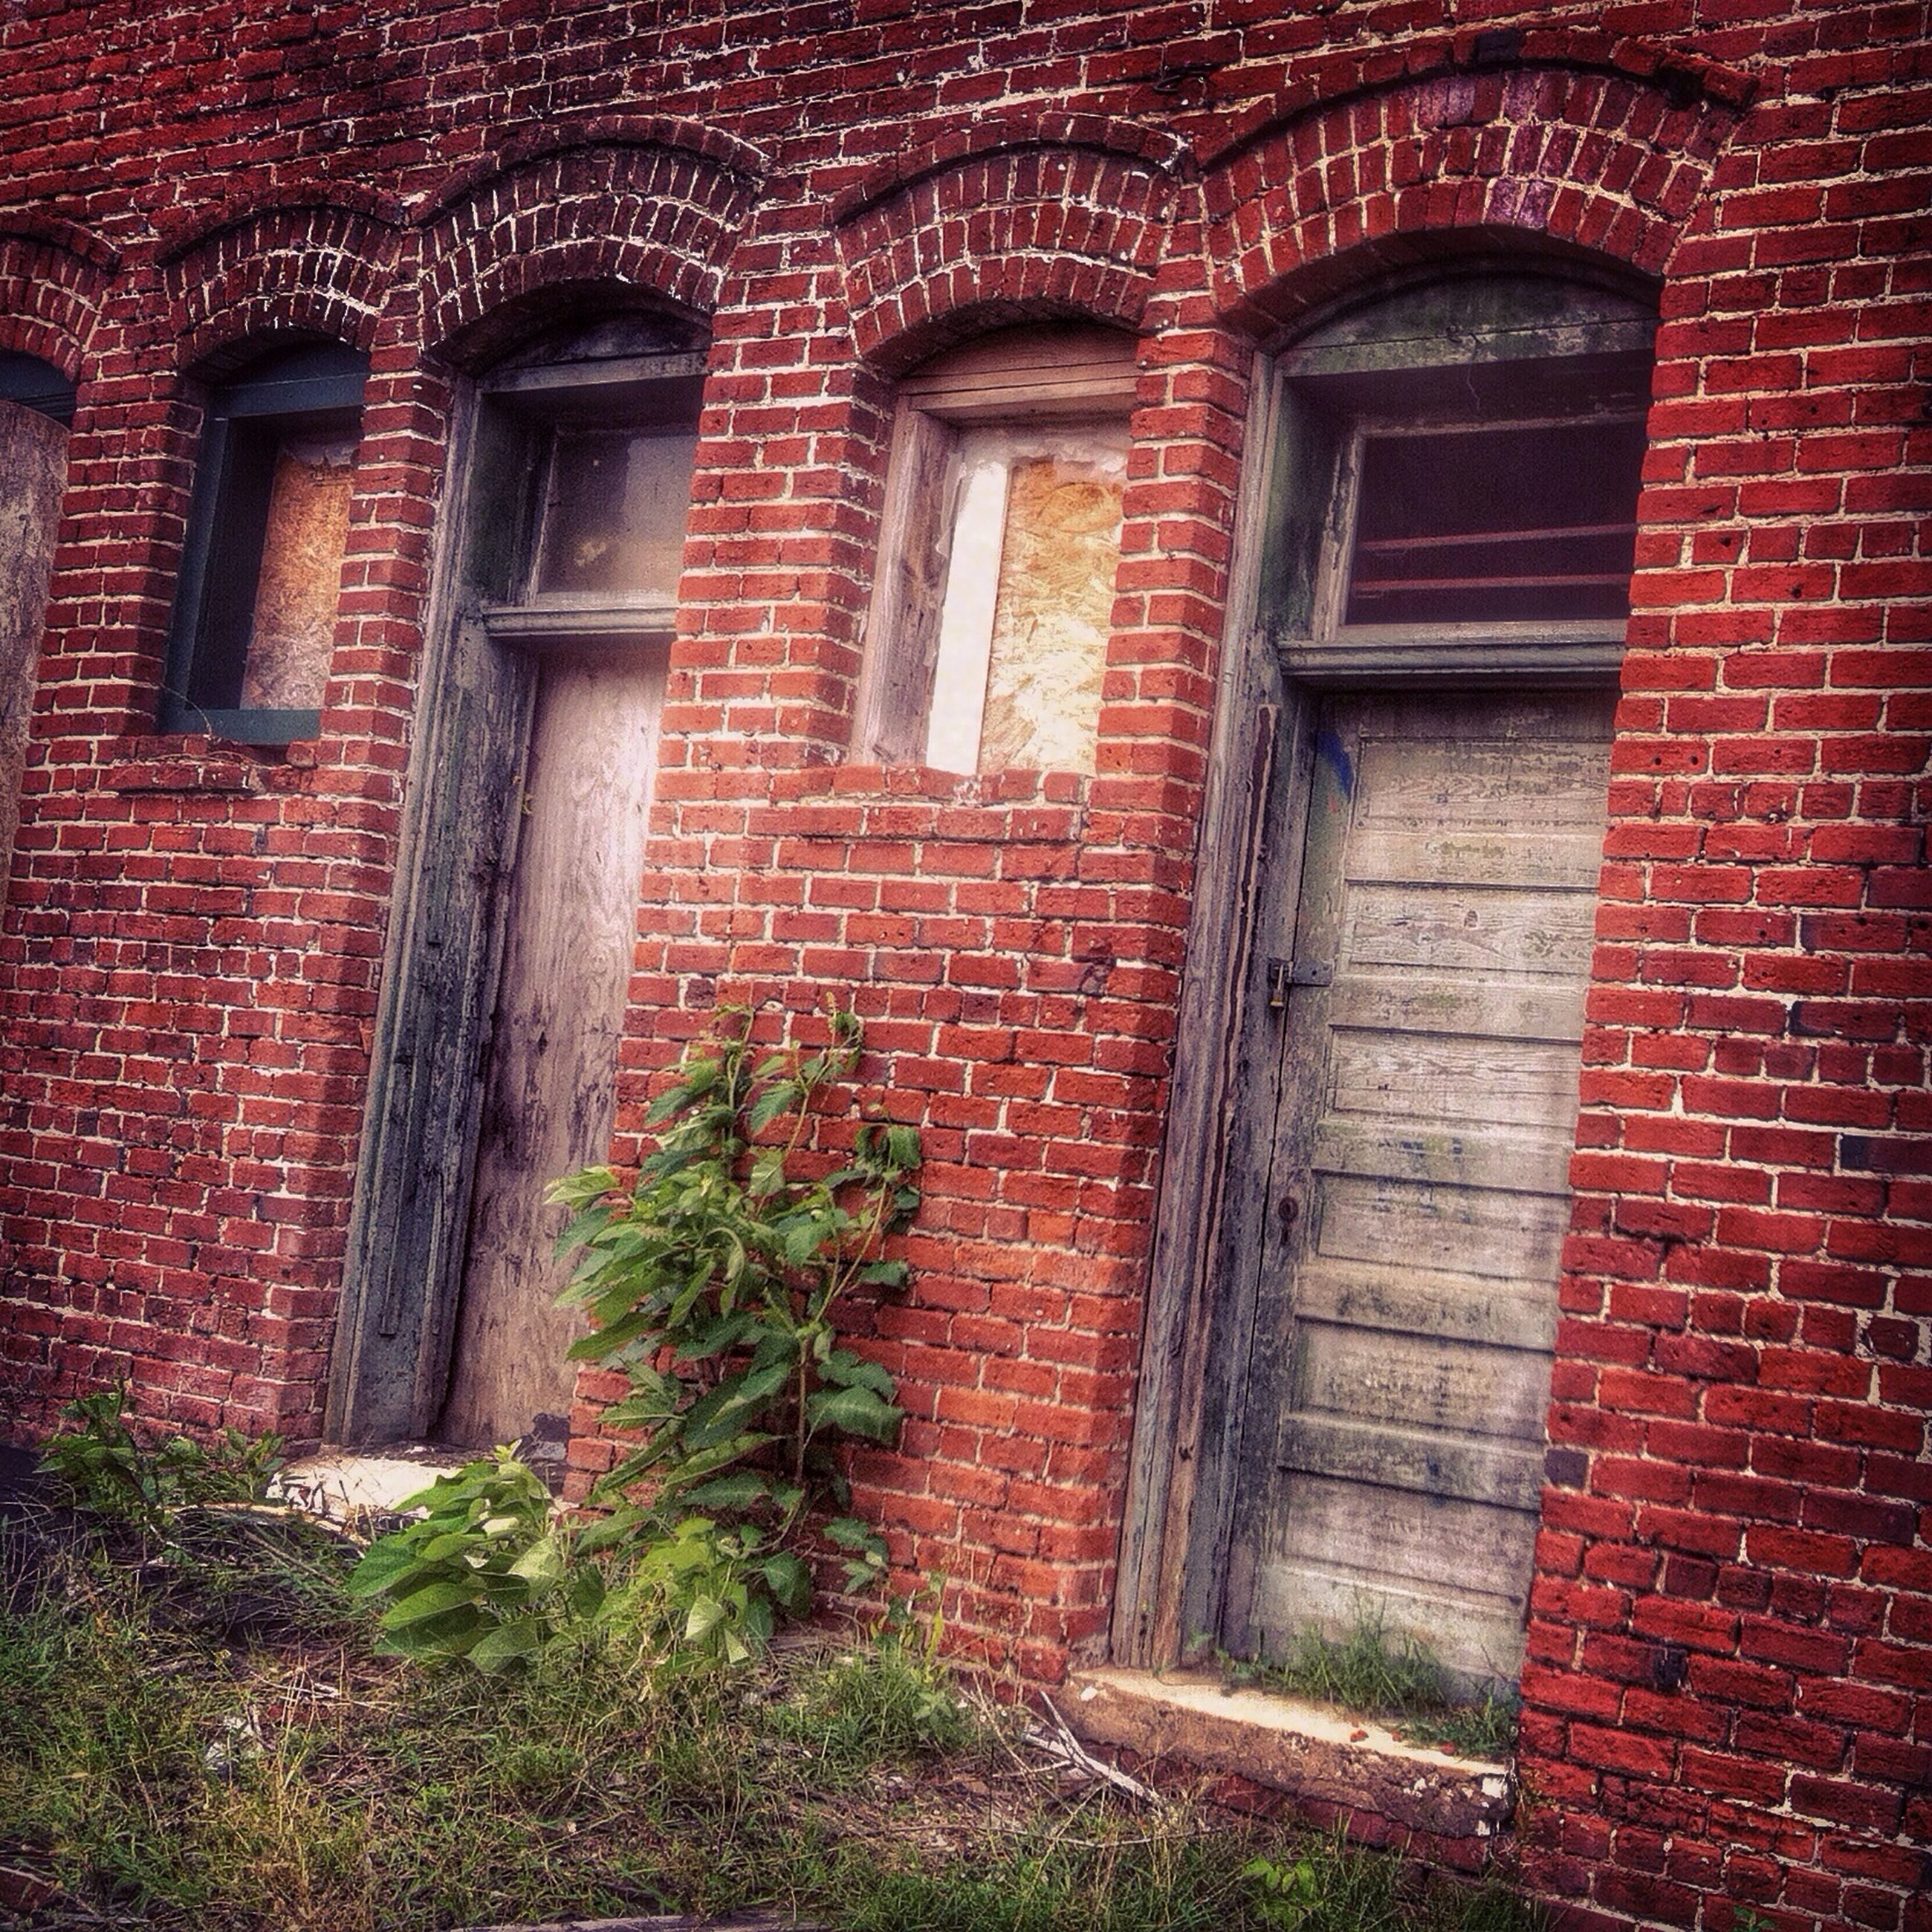 building exterior, architecture, built structure, window, brick wall, house, old, door, wall - building feature, red, weathered, residential structure, abandoned, closed, day, wall, plant, outdoors, stone wall, building